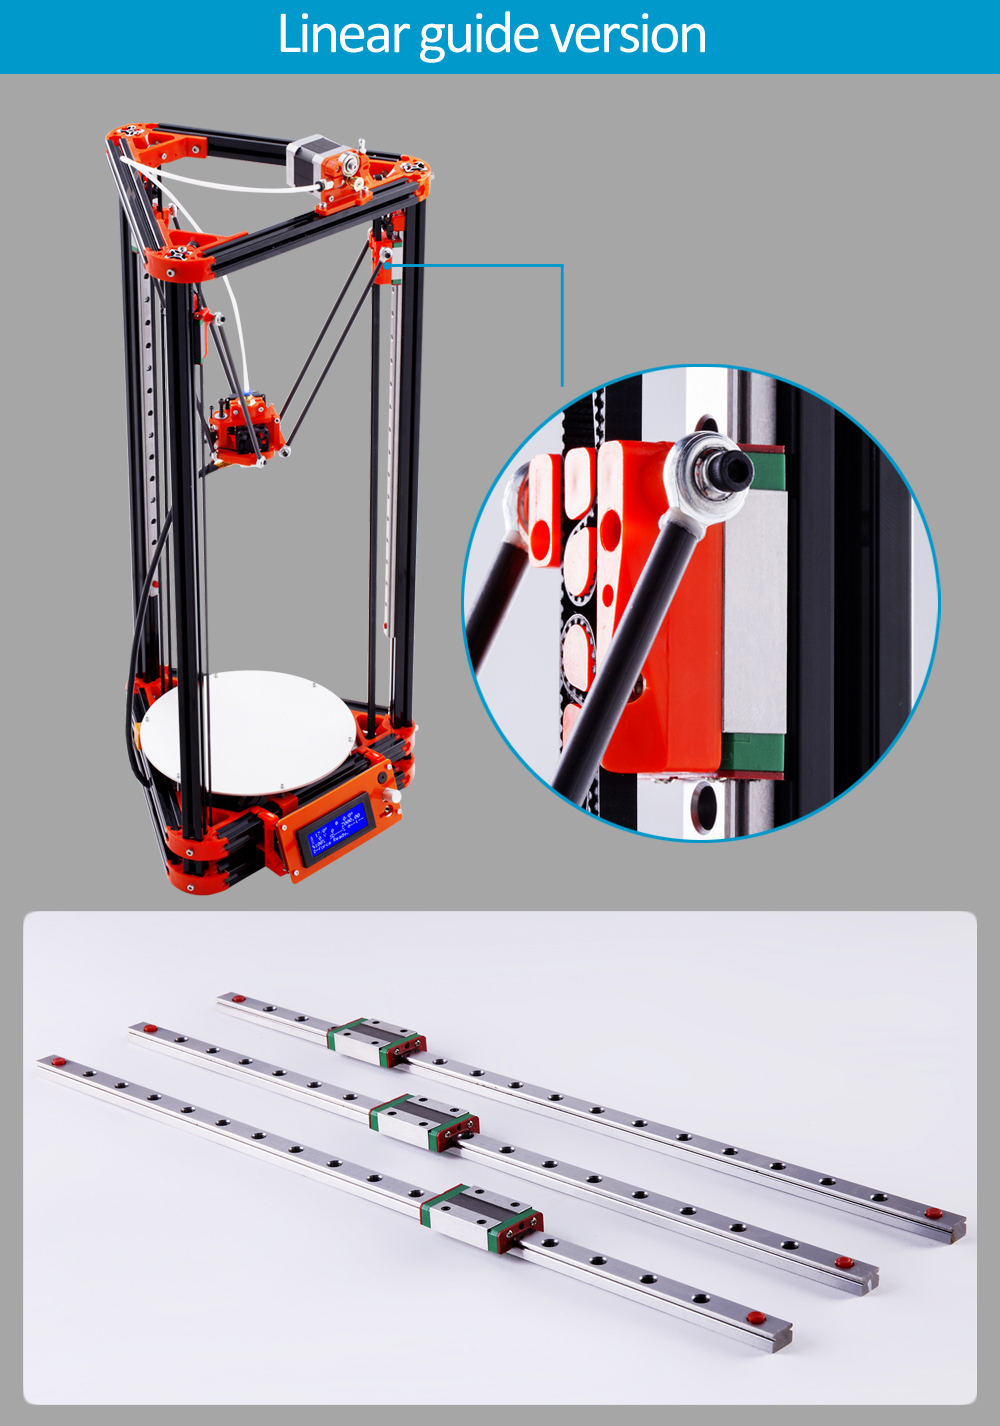 LCD Display Delta Diy 3d Printer Kits With One Roll Filament Masking Tape SD Card For Free